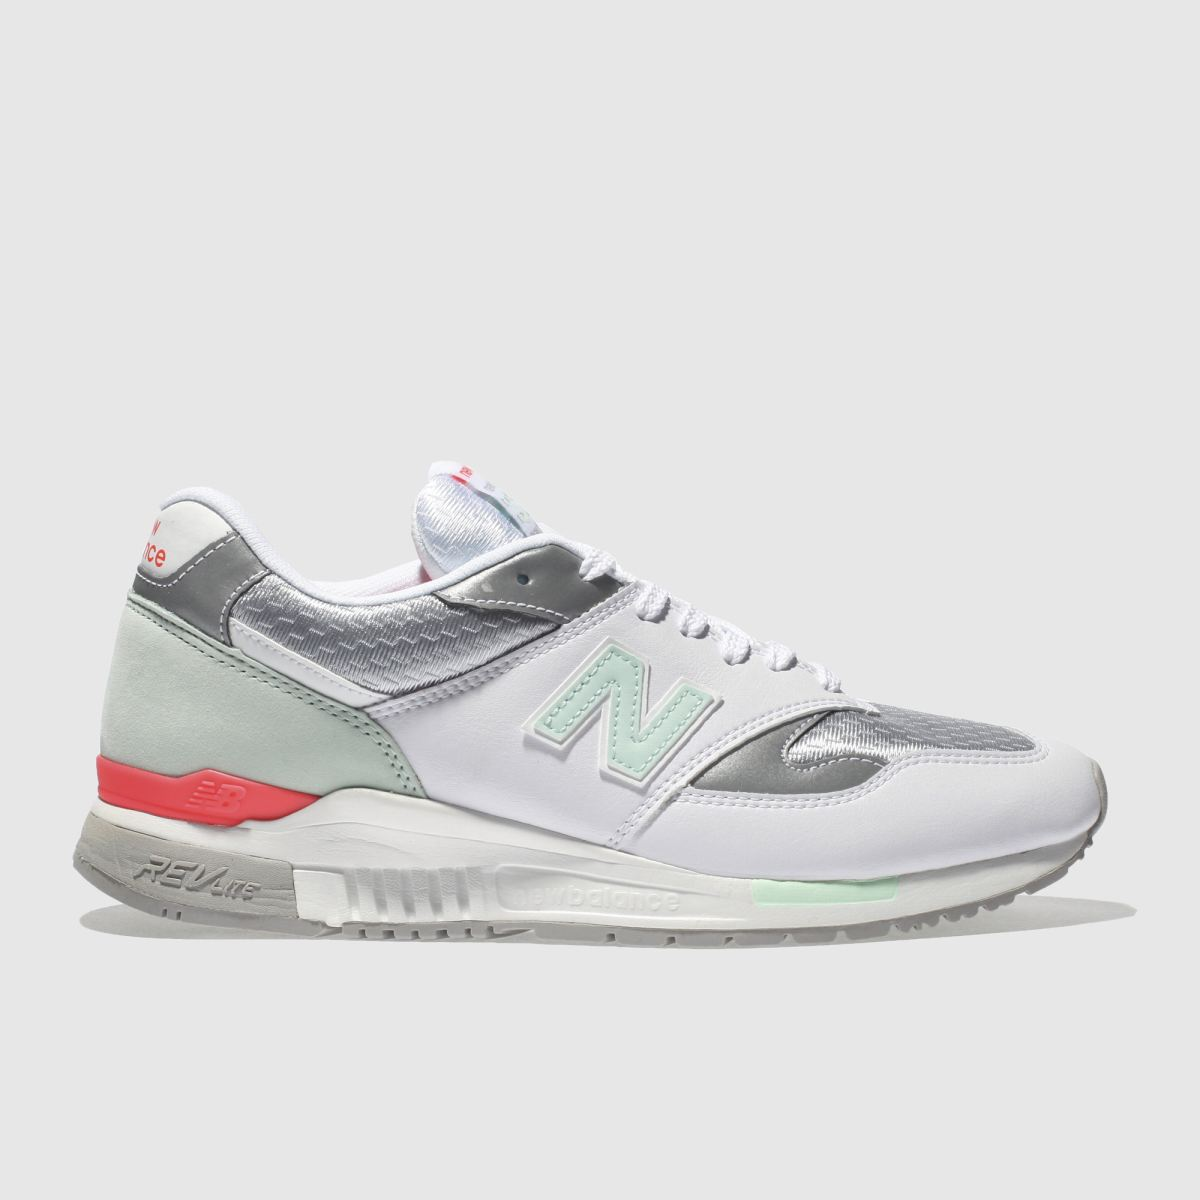 New Balance White & Silver 840 Trainers